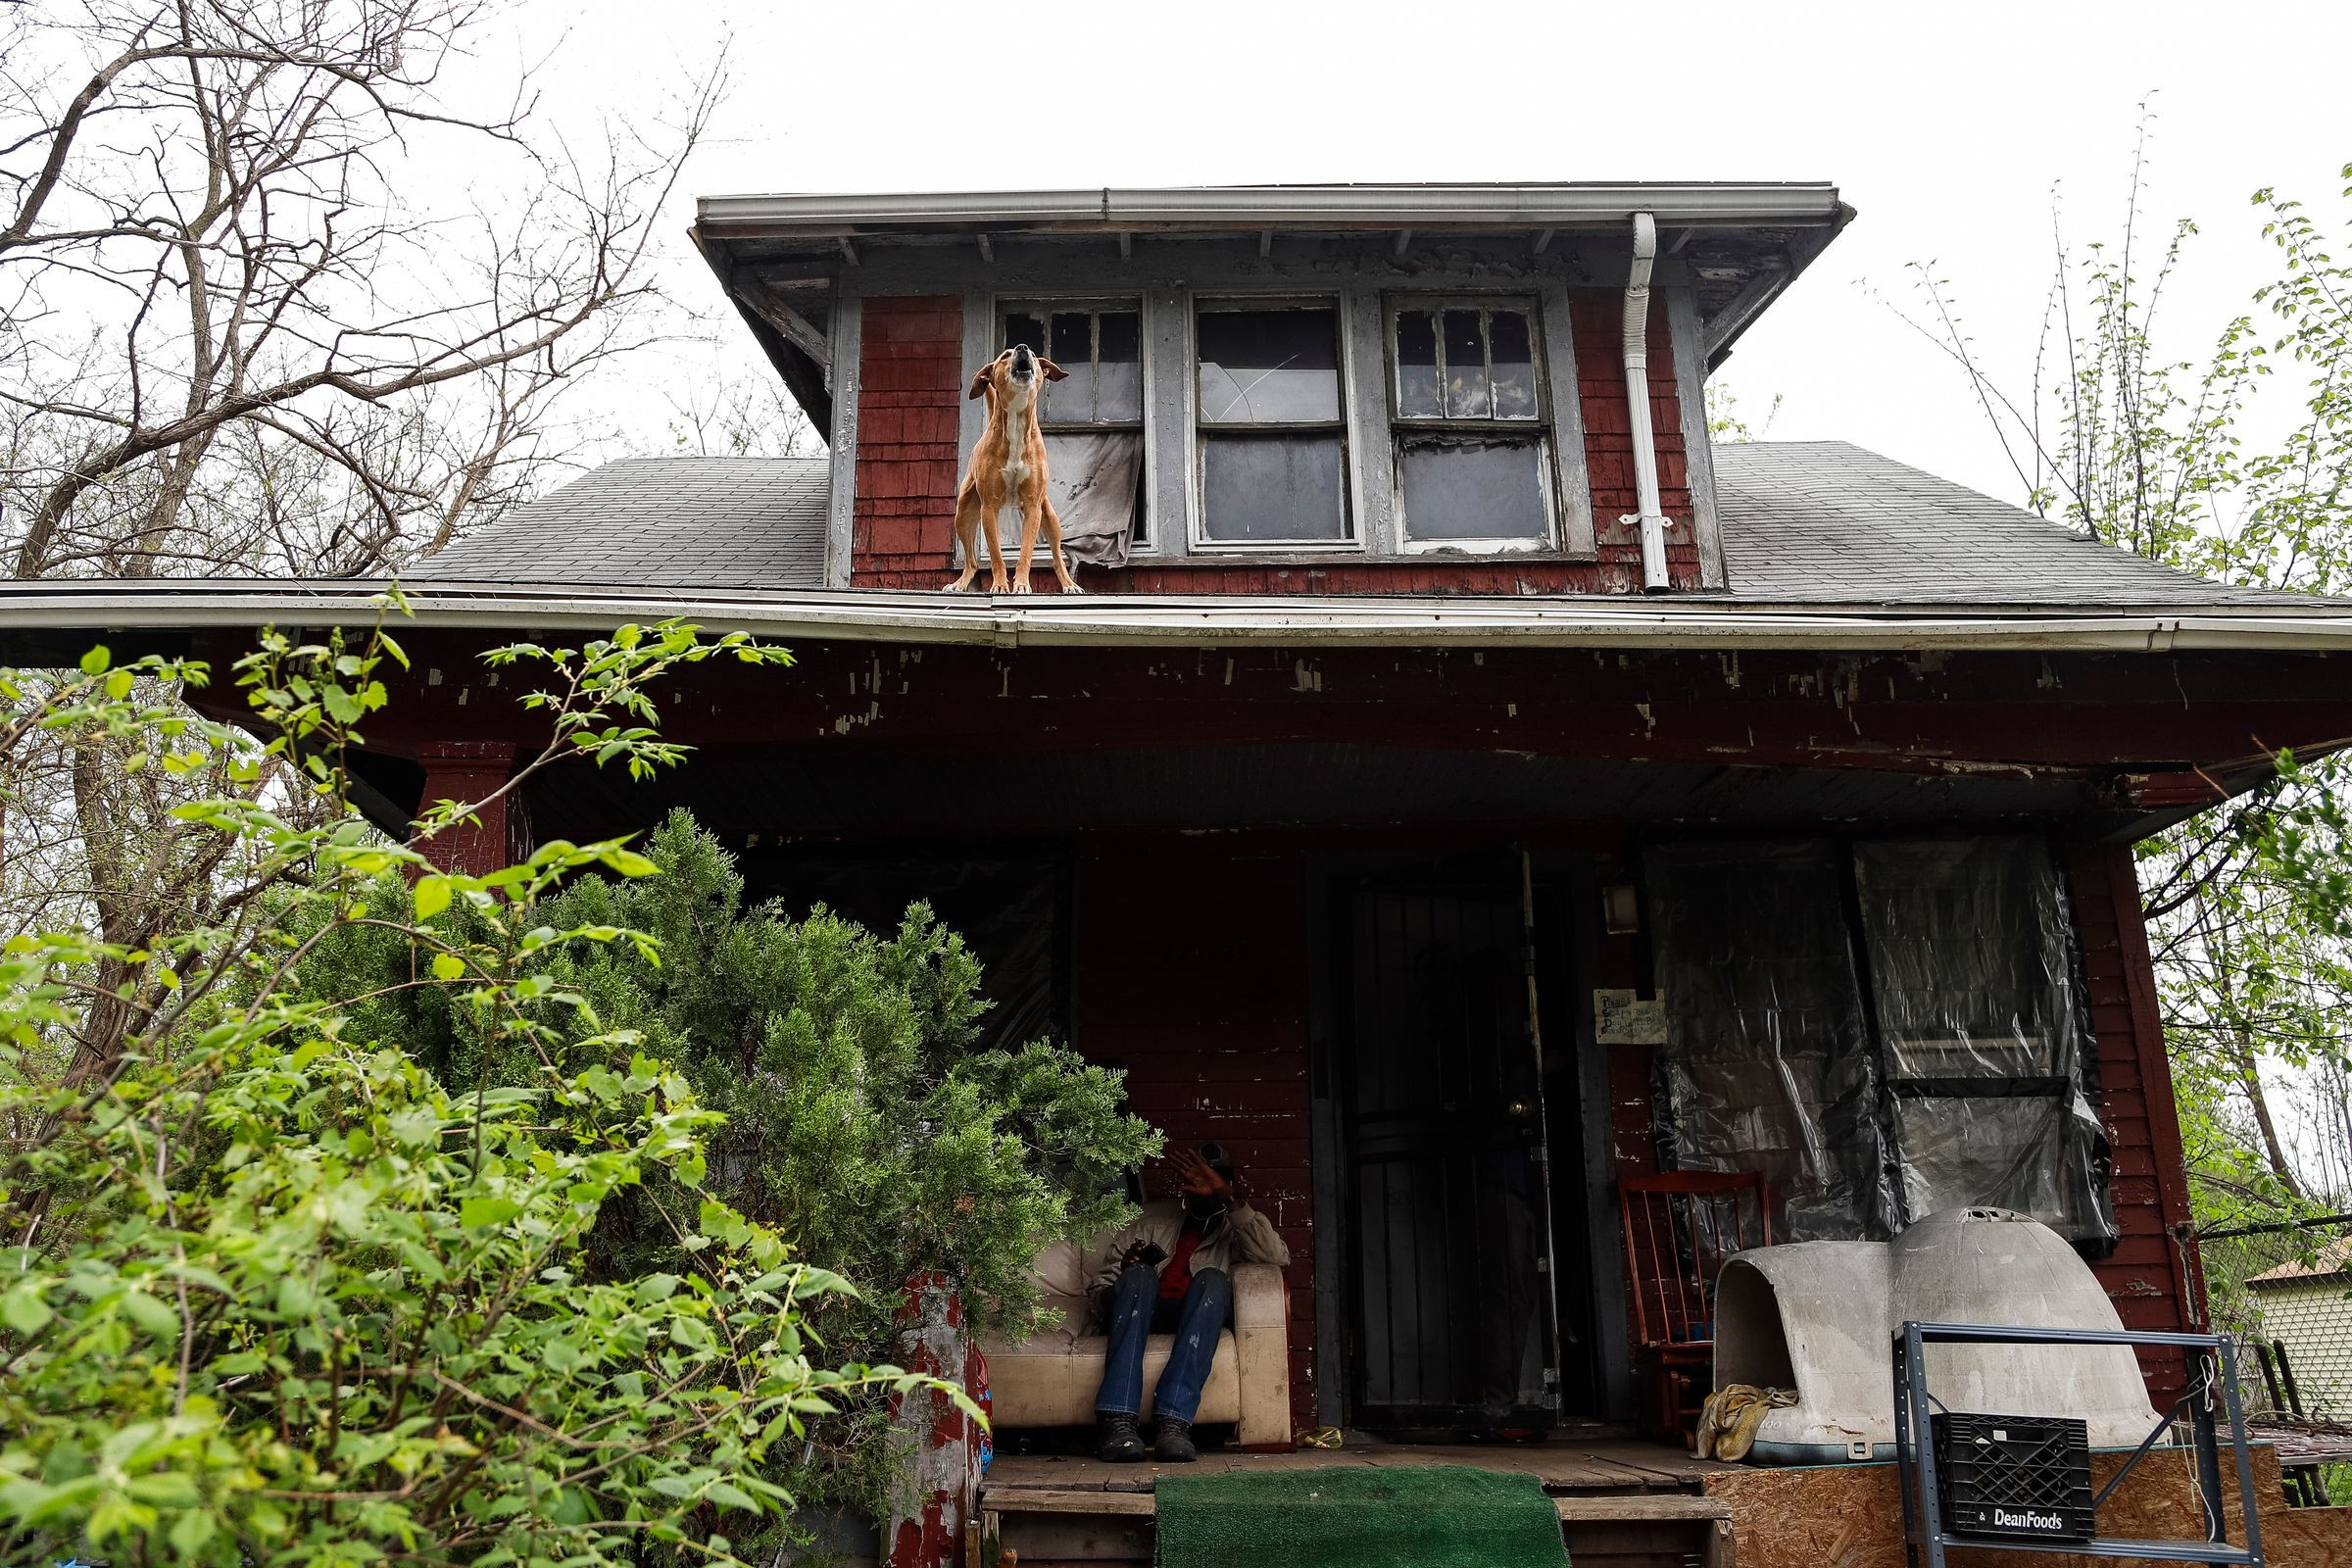 This photo of a house owned by the Detroit Land Bank Authority illustrated the city's problem with squatters living illegally in thousands of agency properties. The investigation was among the stories recognized by the Michigan Press Association.